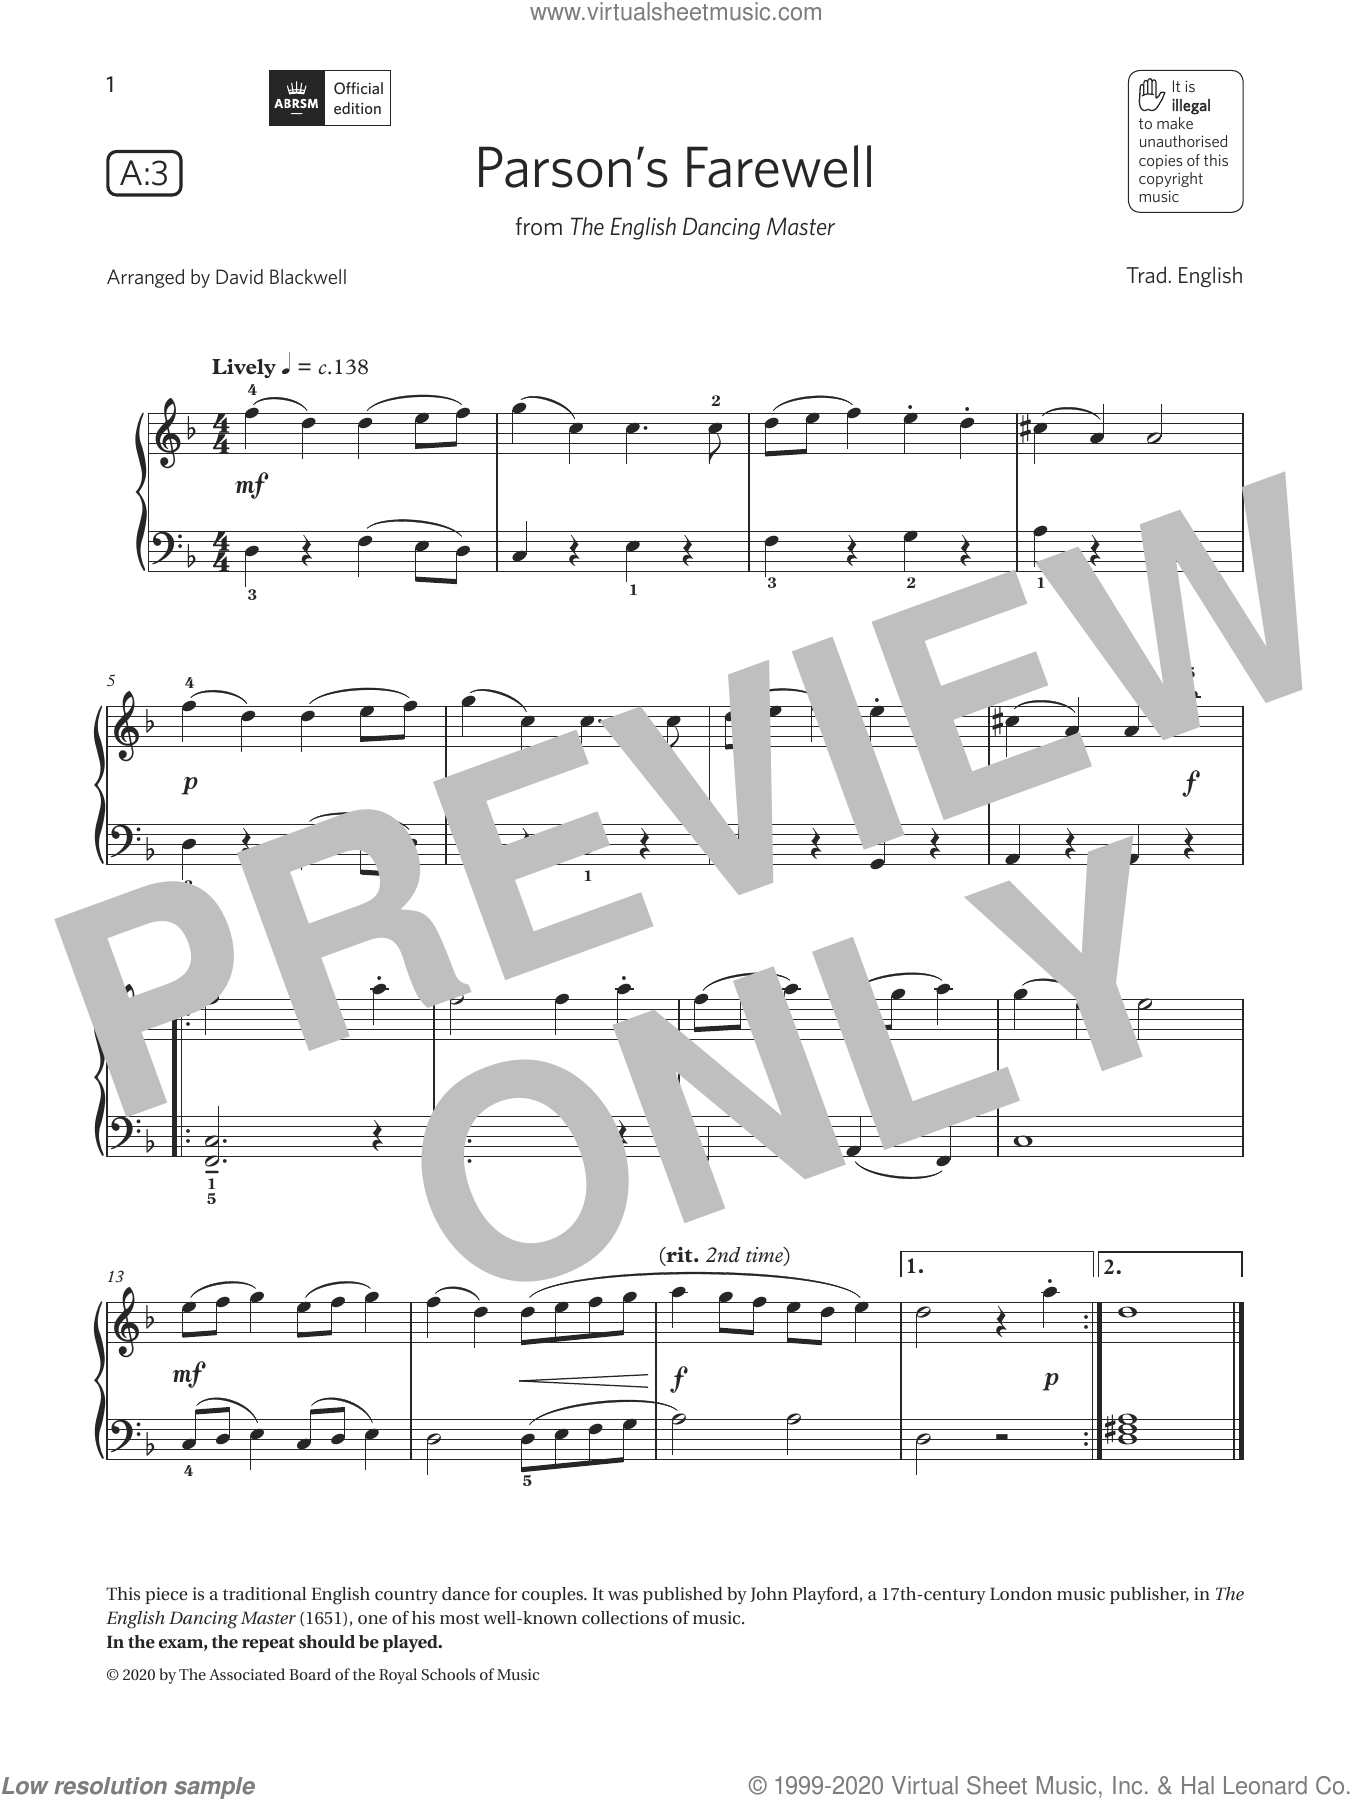 English - Parson's Farewell (Grade 1. list A3. from the ABRSM Piano Syllabus 2021 and 2022) sheet music for piano solo